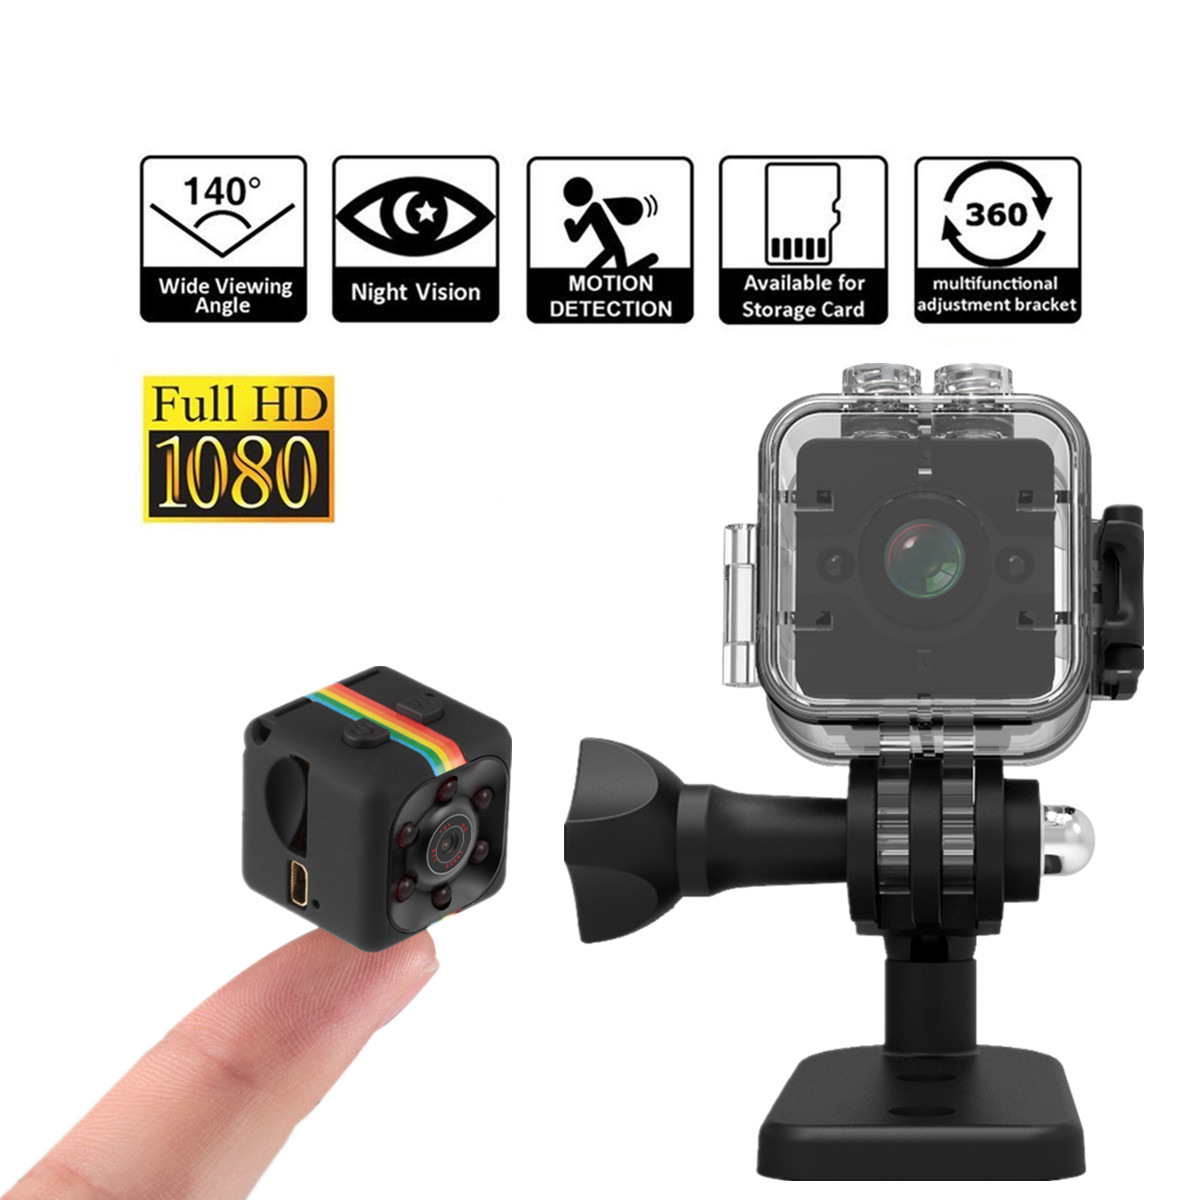 Mini Camera SQ11 1080P Full HD Micro Cam Motion Detection Camcorder Infrared Night Vision Video Recorder Wide Angle sq12 SQ 11